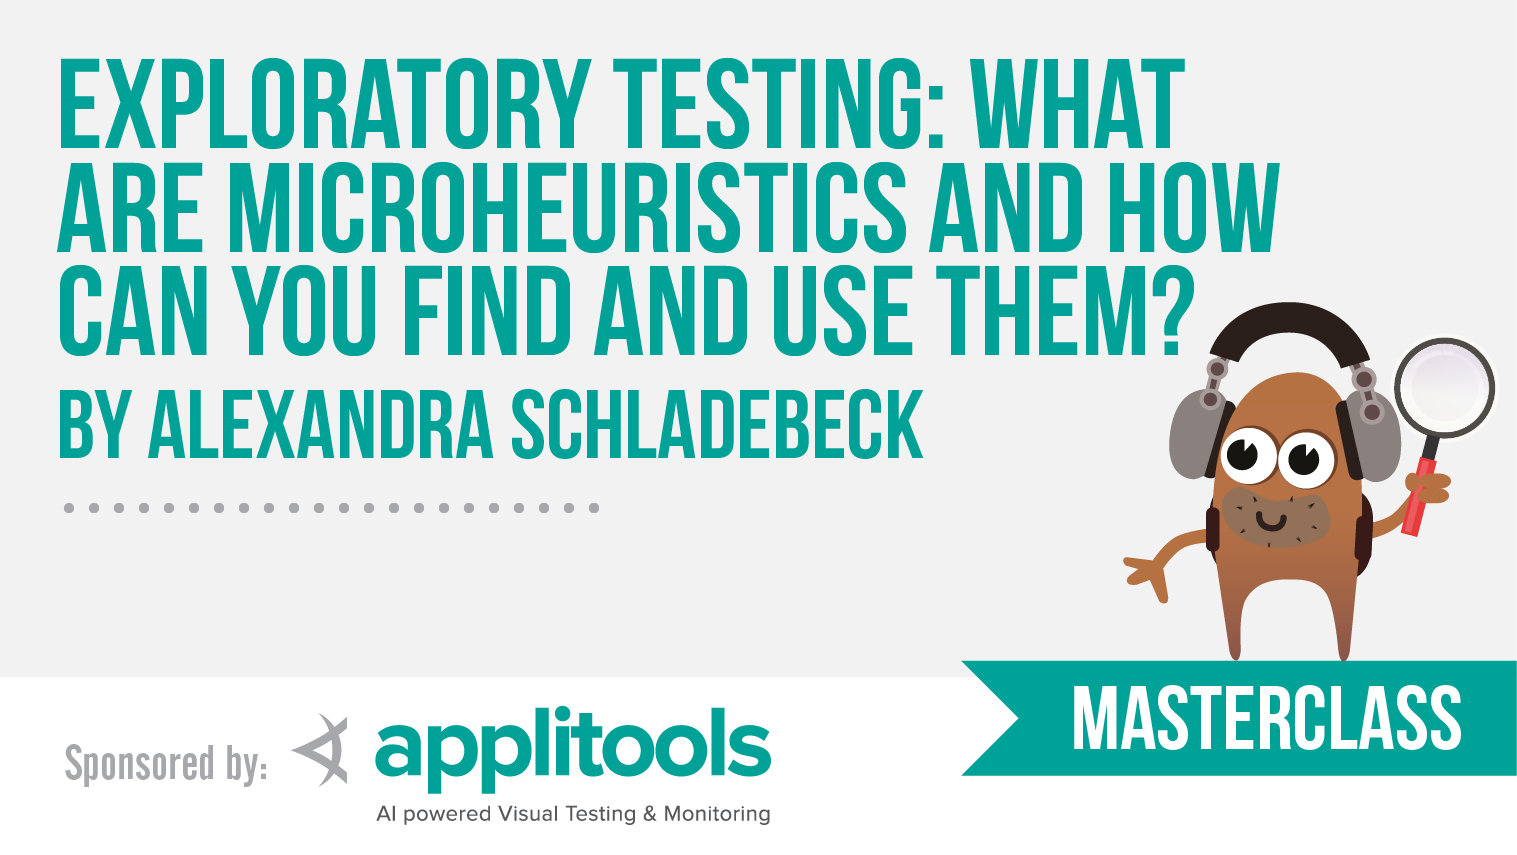 Exploratory Testing: What are microheuristics and how can you find and use them? with Alexandra Schladebeck